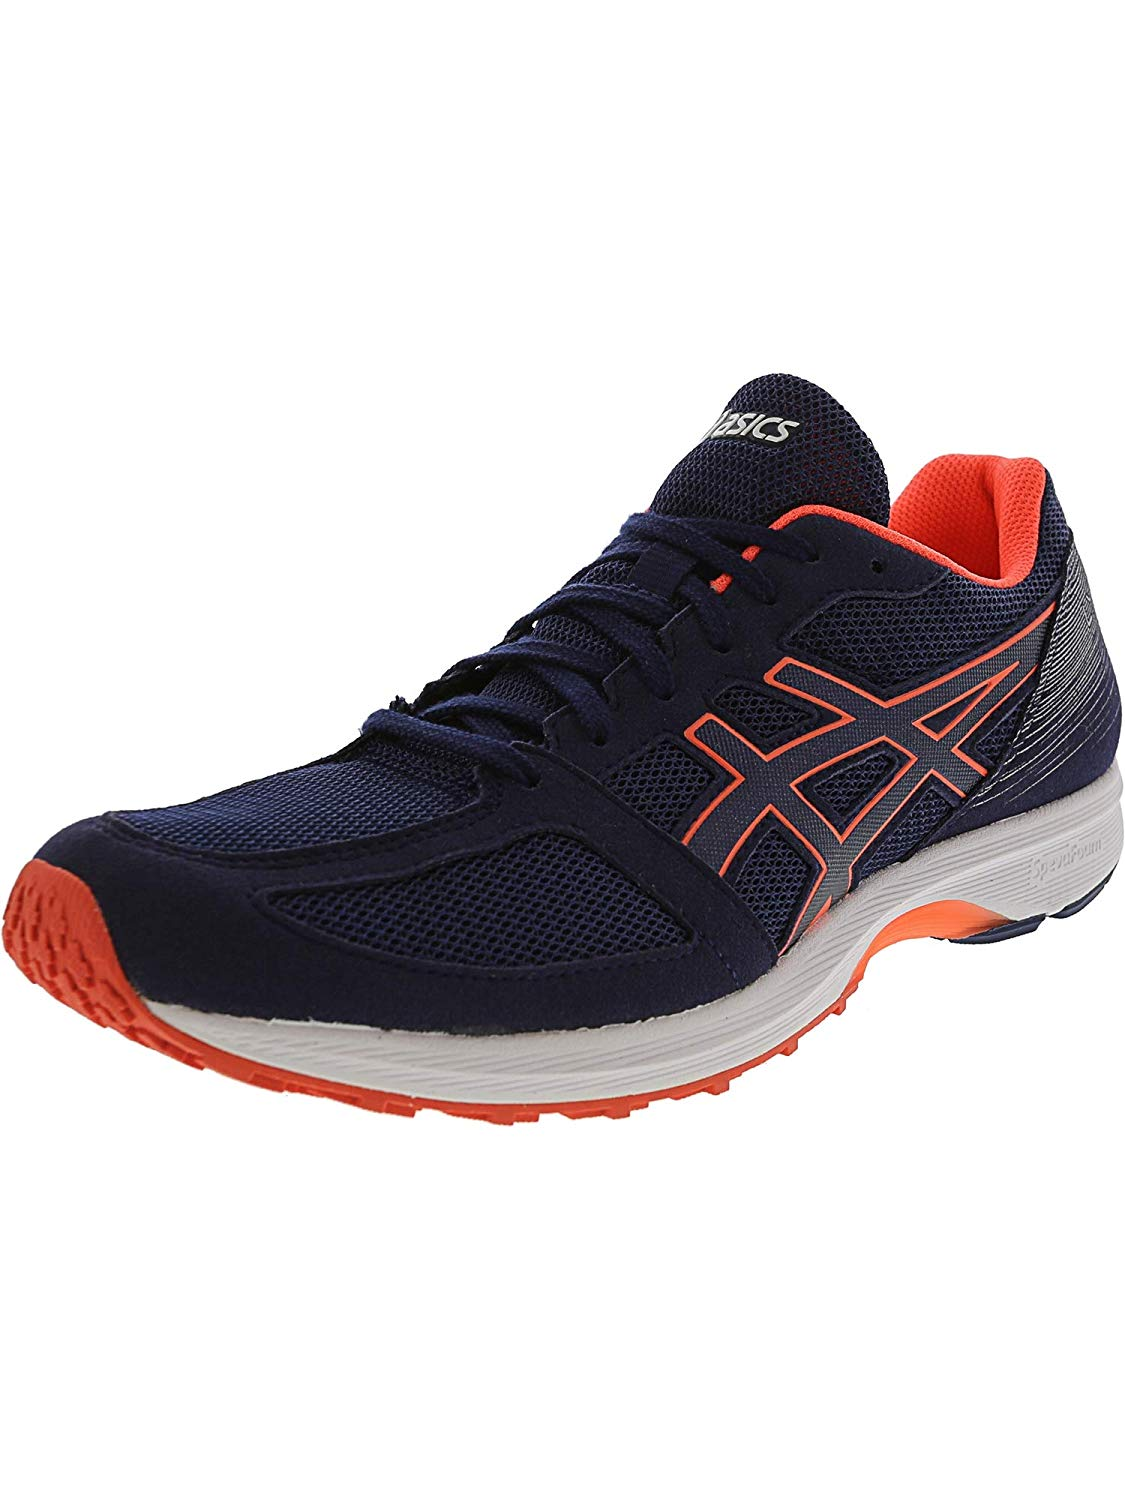 Details about ASICS T8B0N Men's Lyteracer TS 7 Running Shoe, Blue, Size 6.5